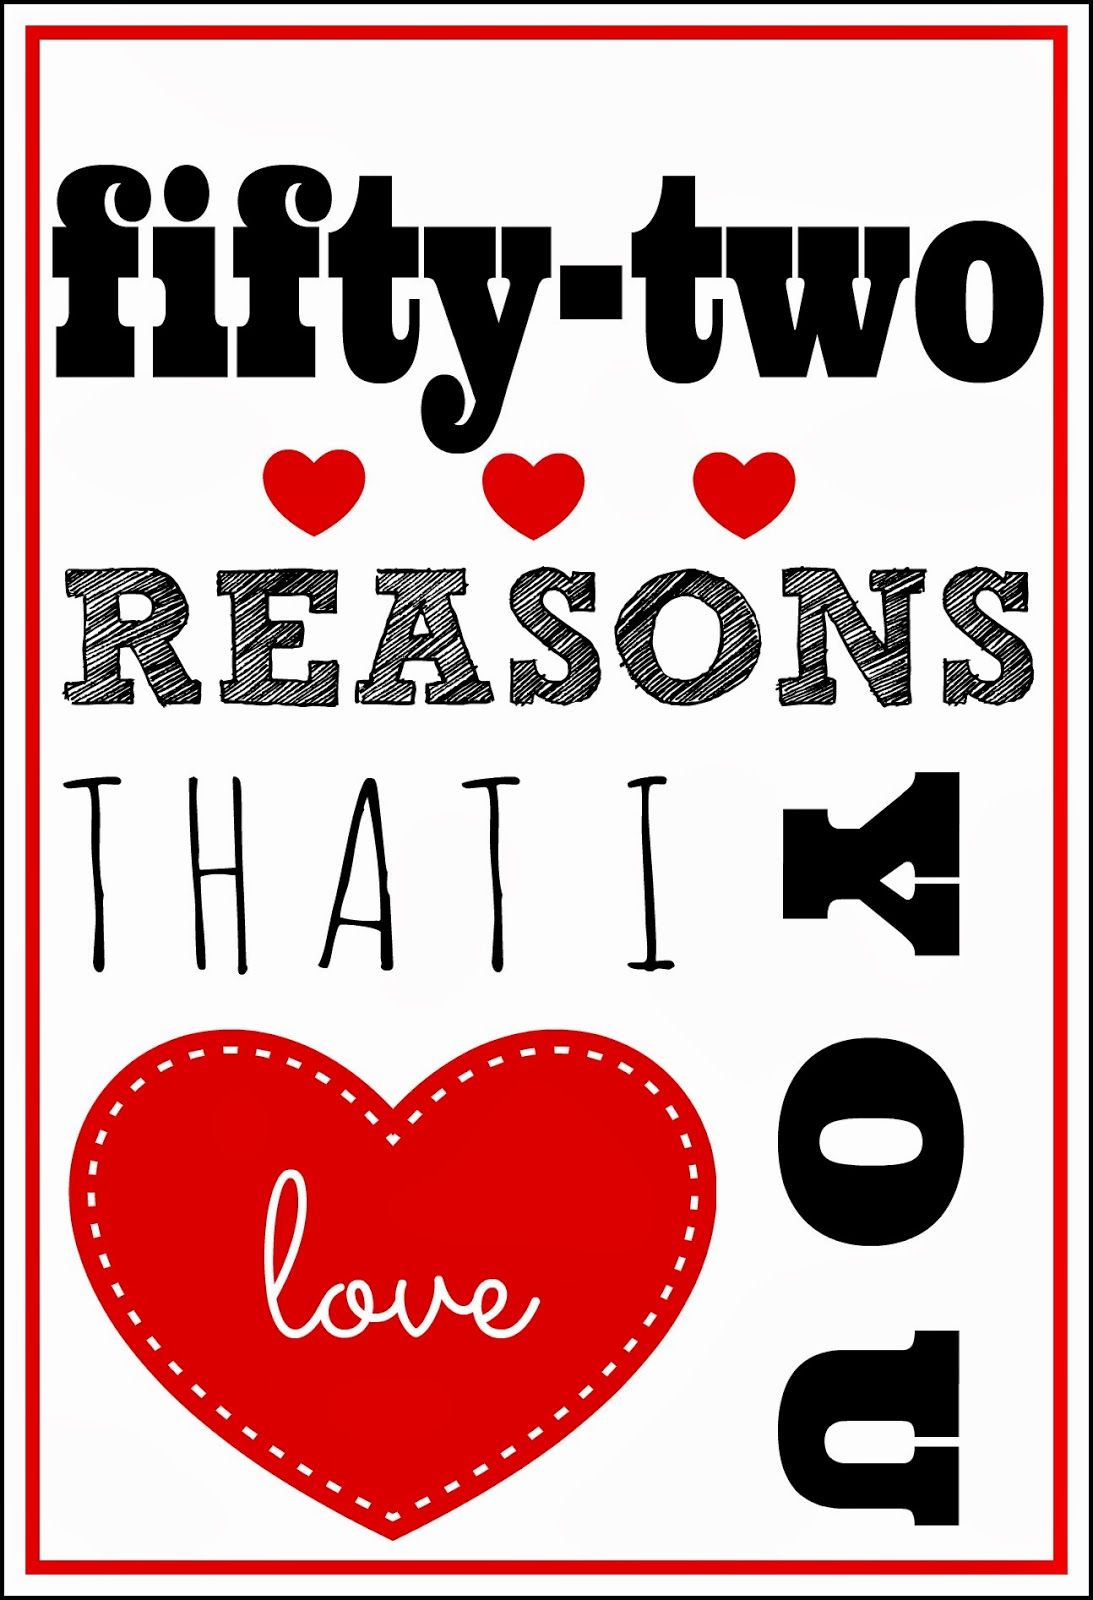 30 52 Reasons I Love You Template Free ~ Atabeyimedya - 52 Reasons Why I Love You Free Printable Template